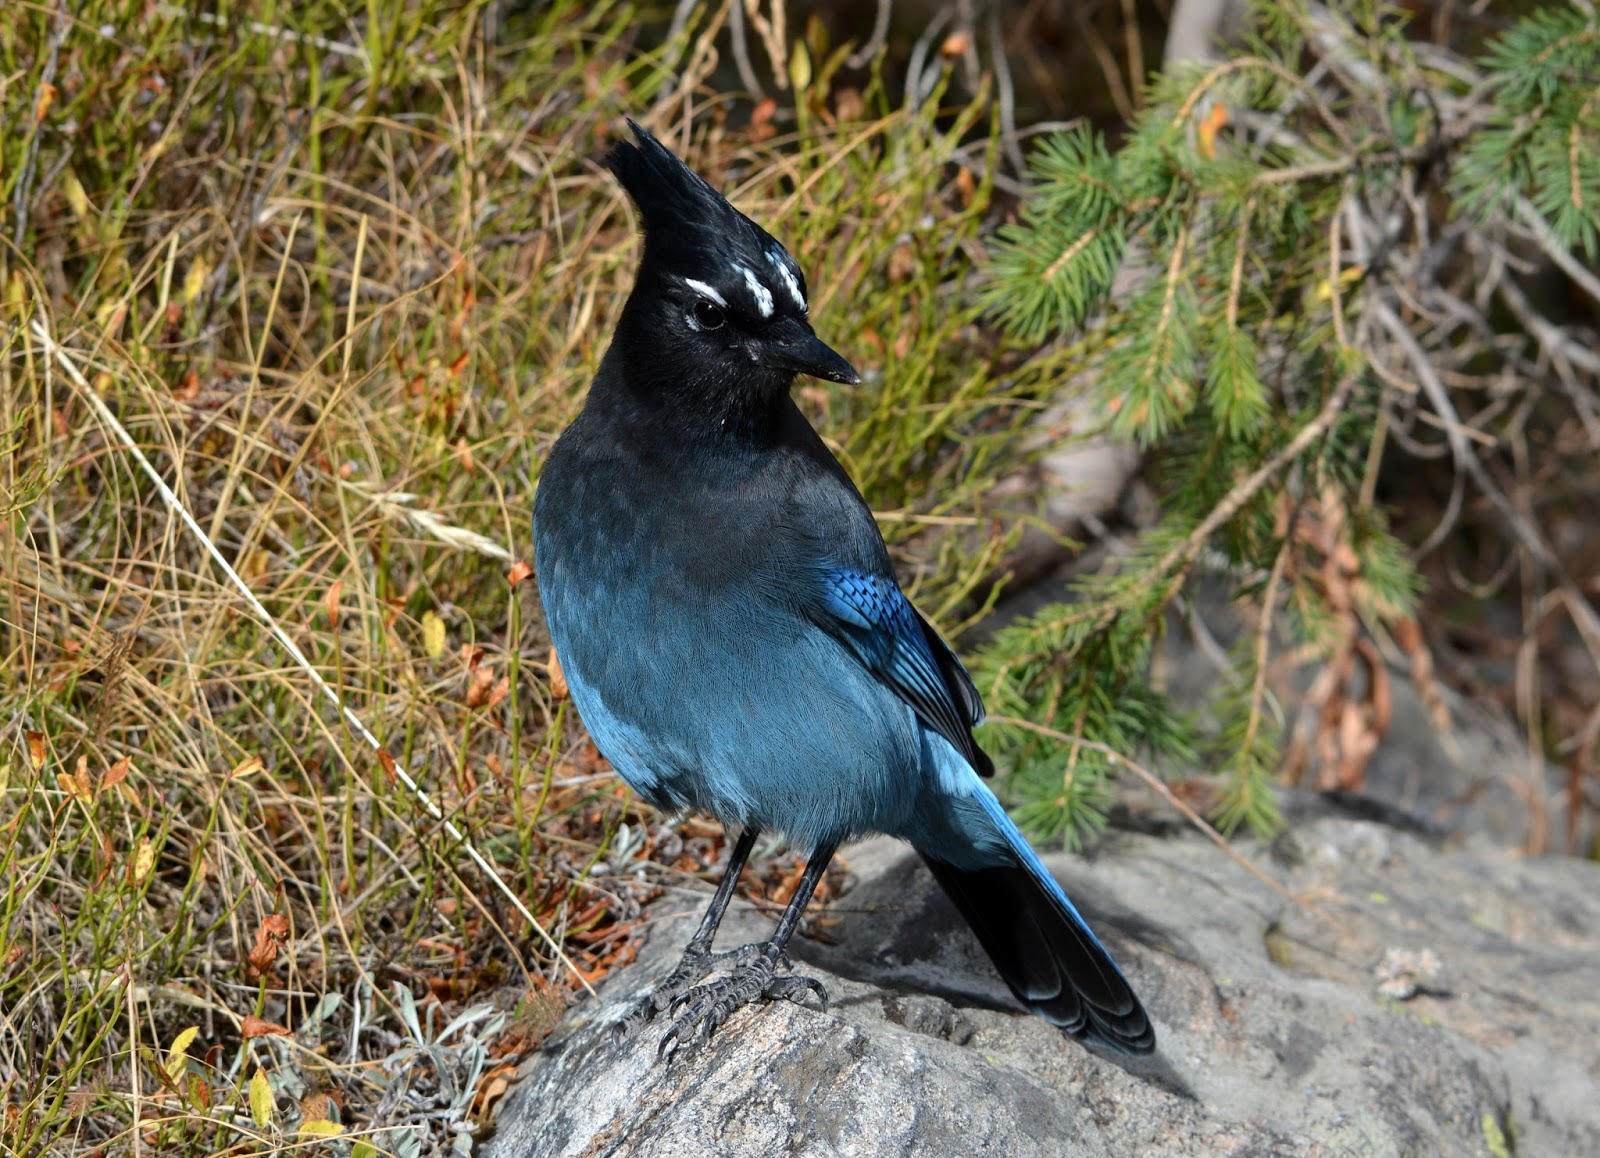 cozy birdhouse | stellar's jay at rocky mountain national park